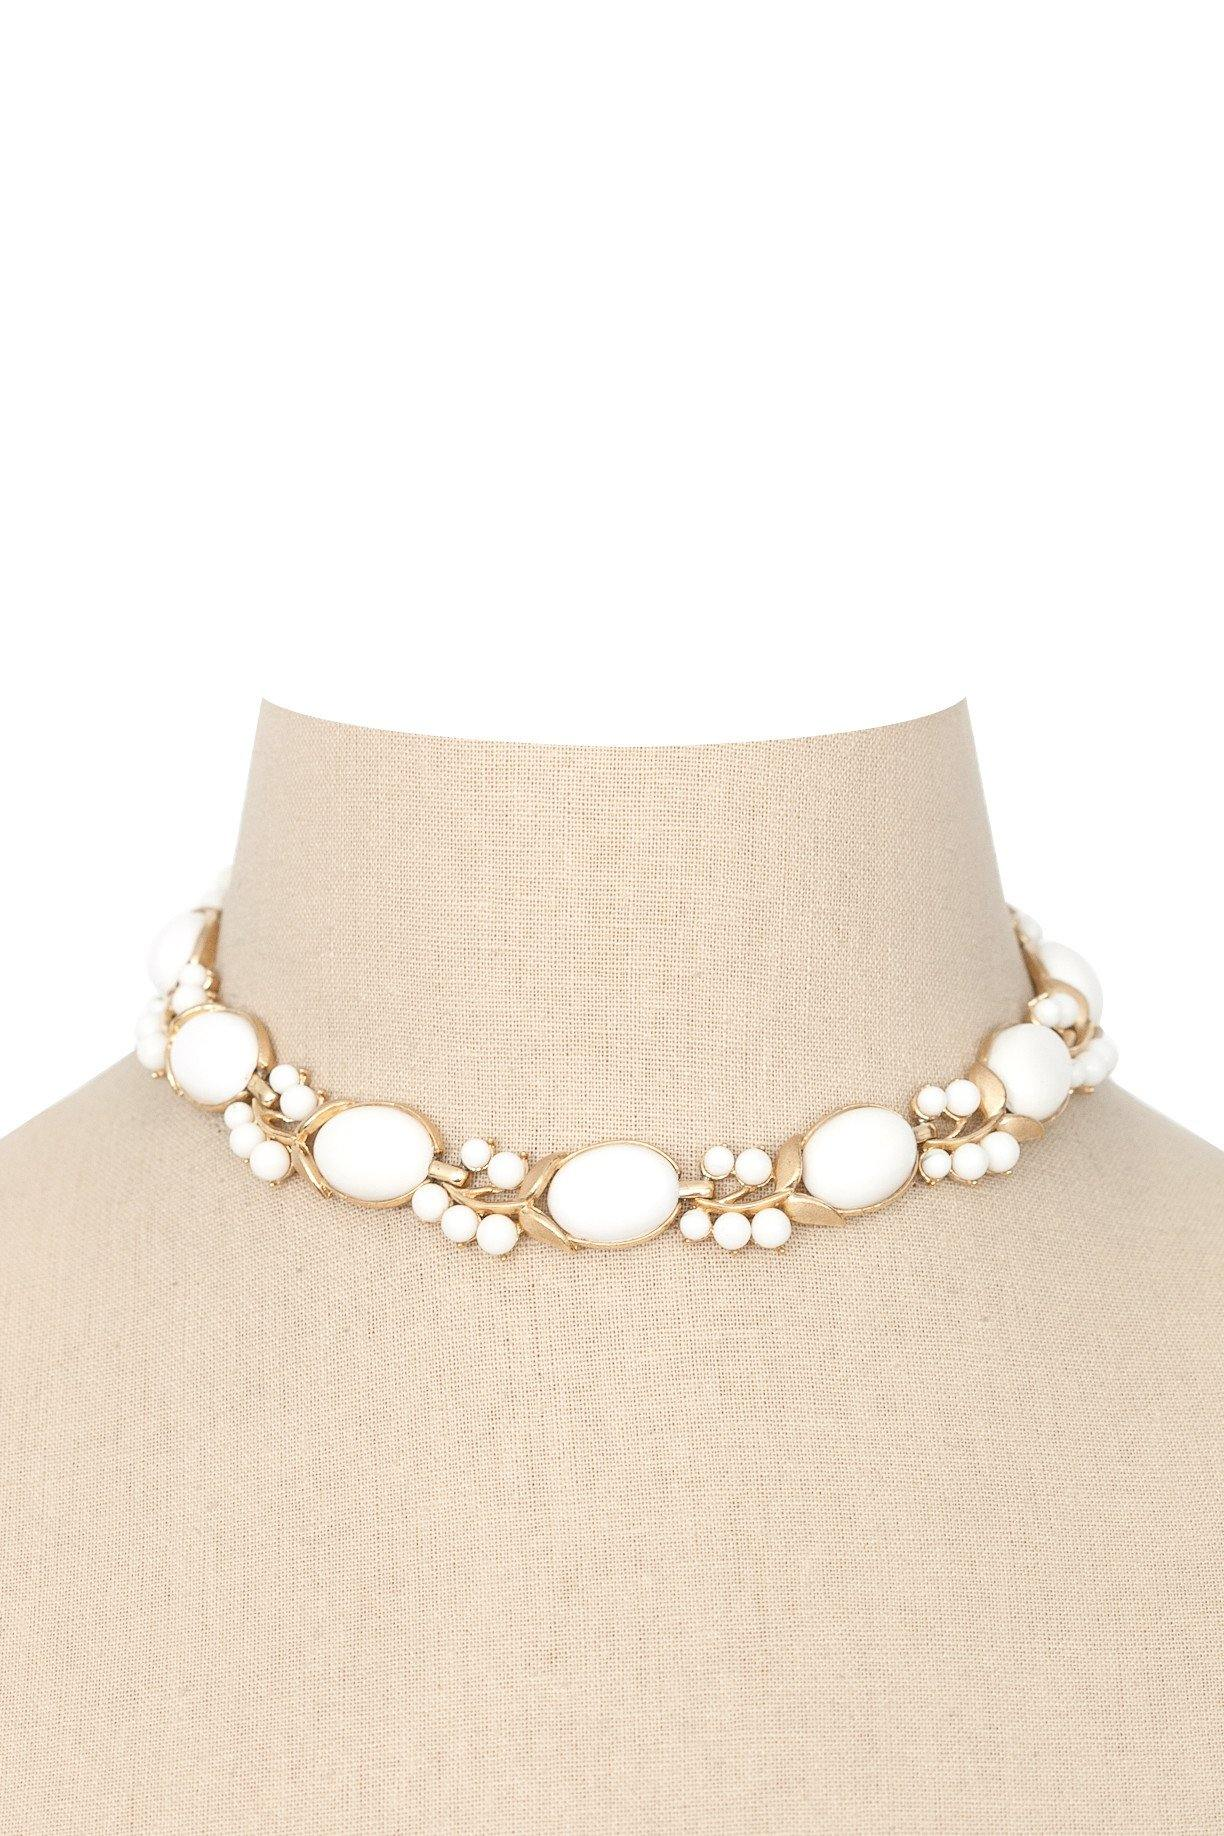 50's Trifari Milkglass Choker Necklace